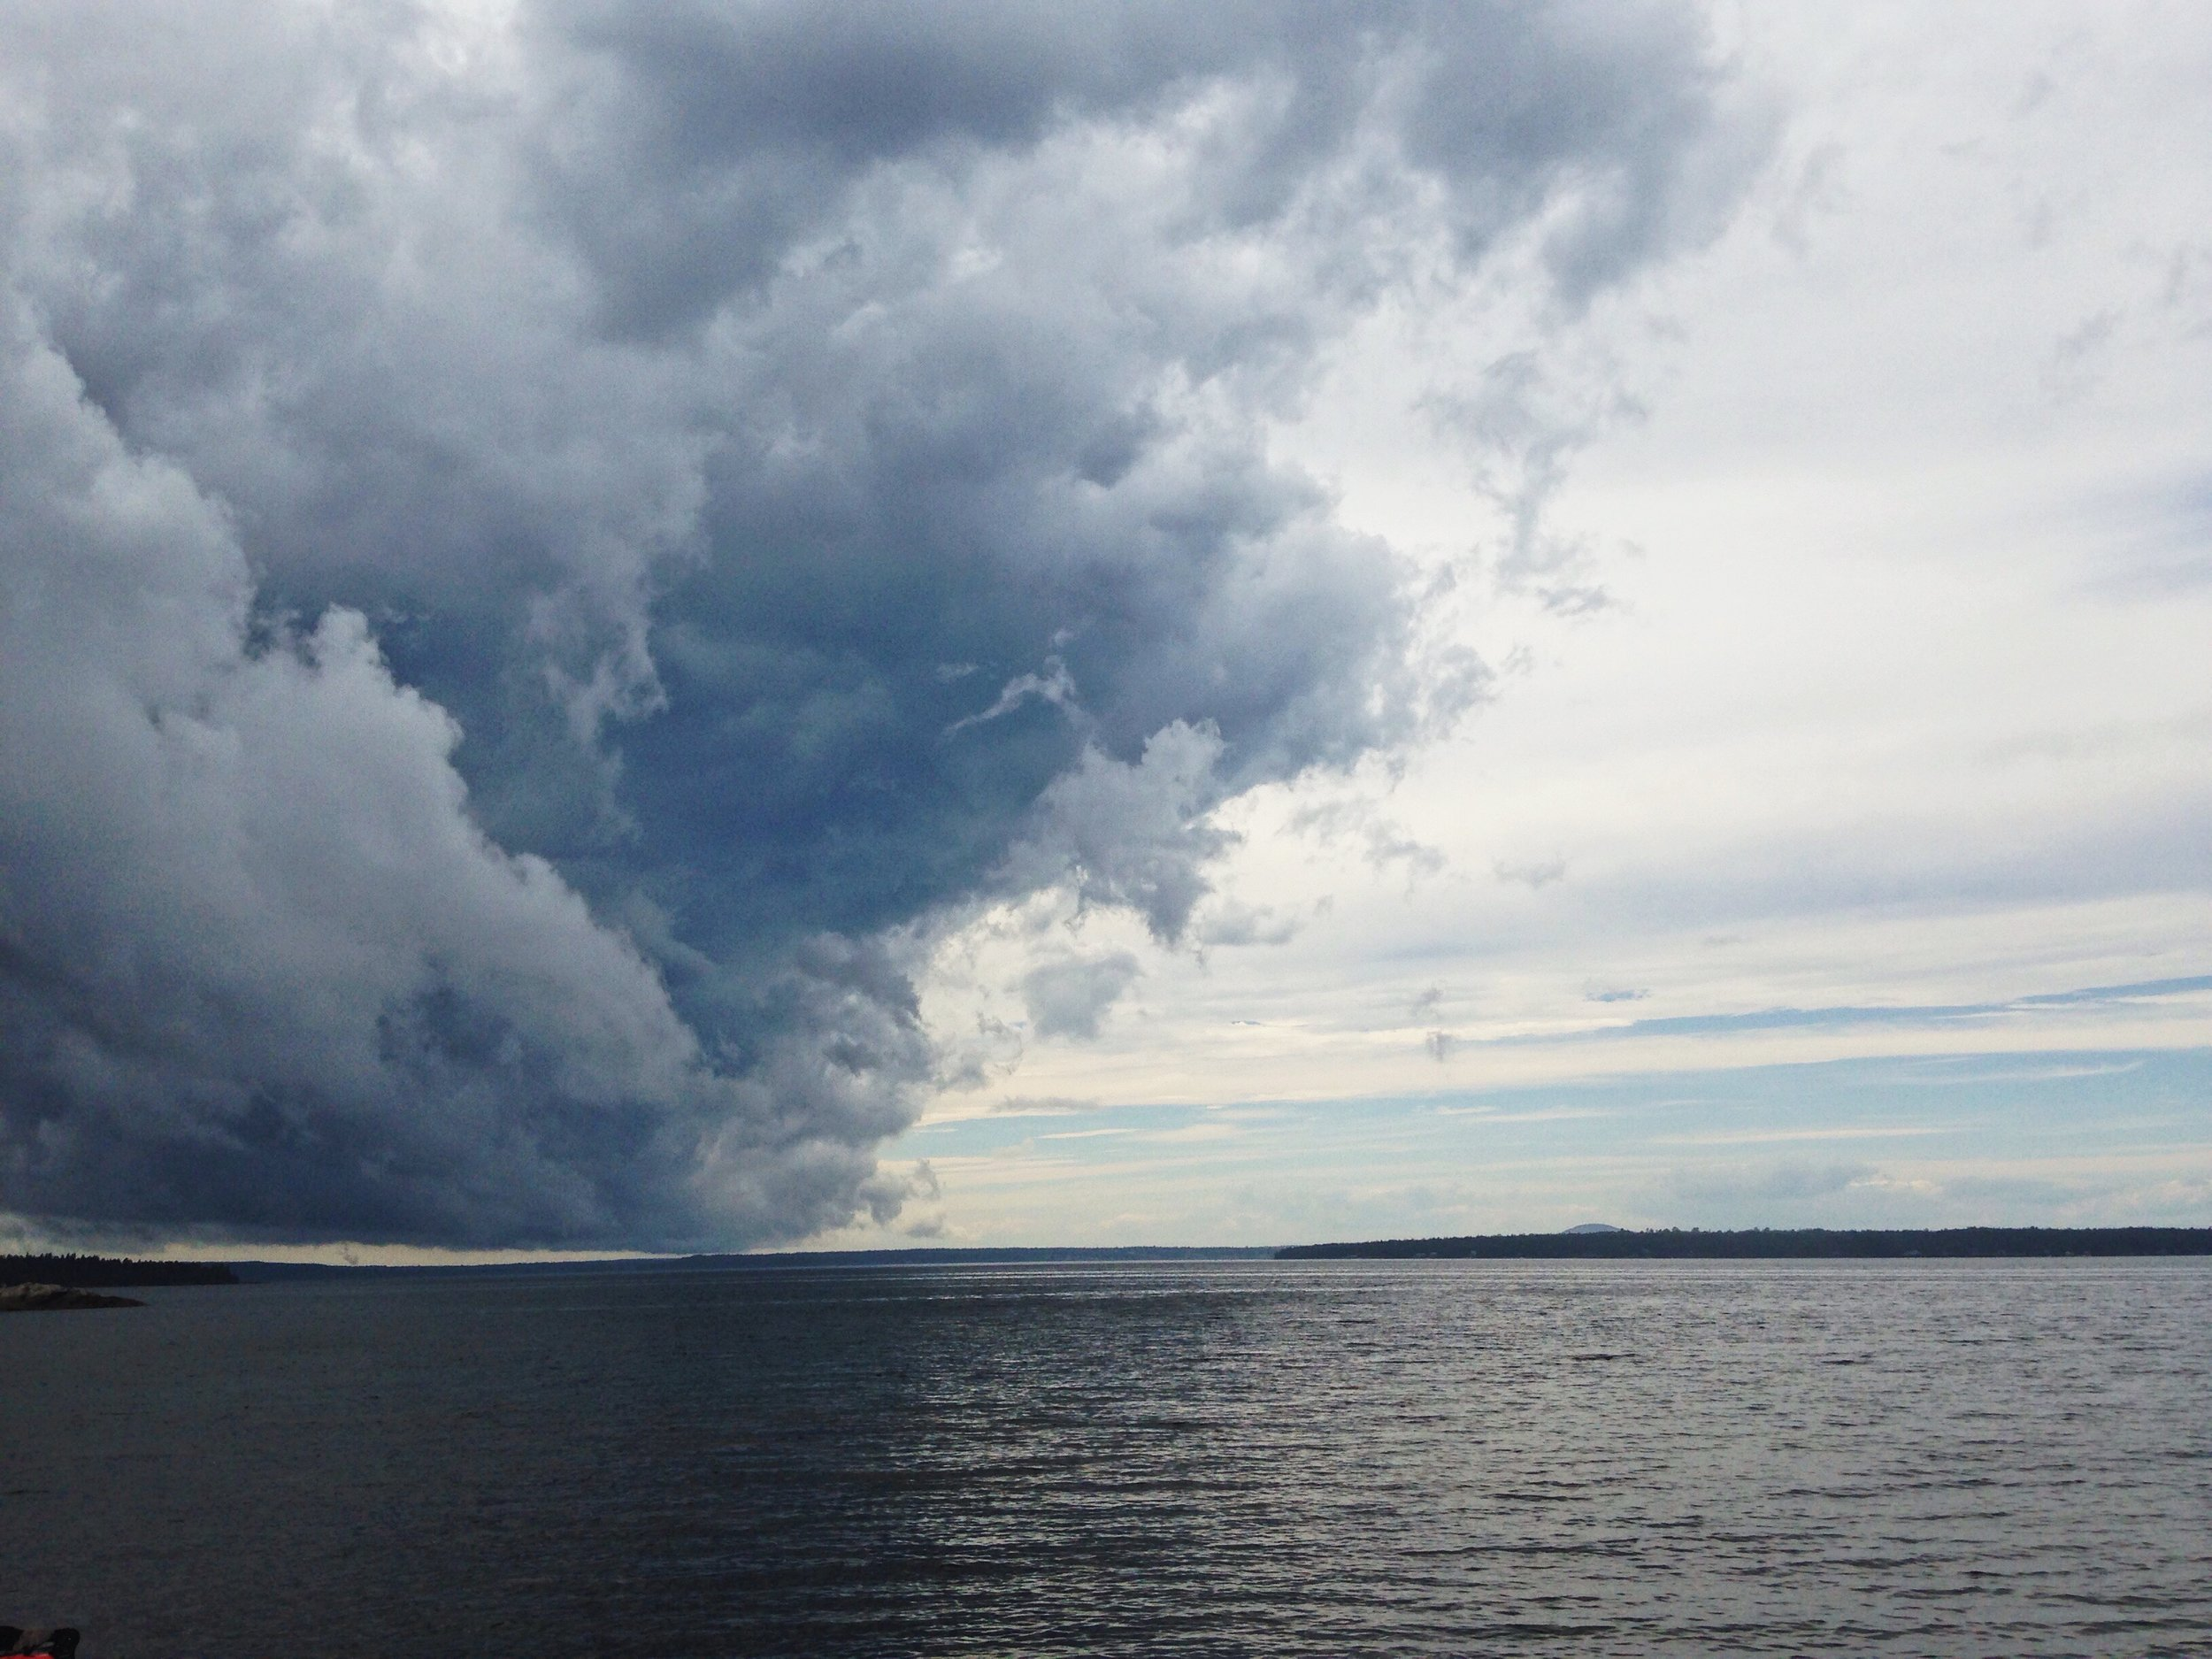 Storm coming in the direction of Bar Harbor, Maine.